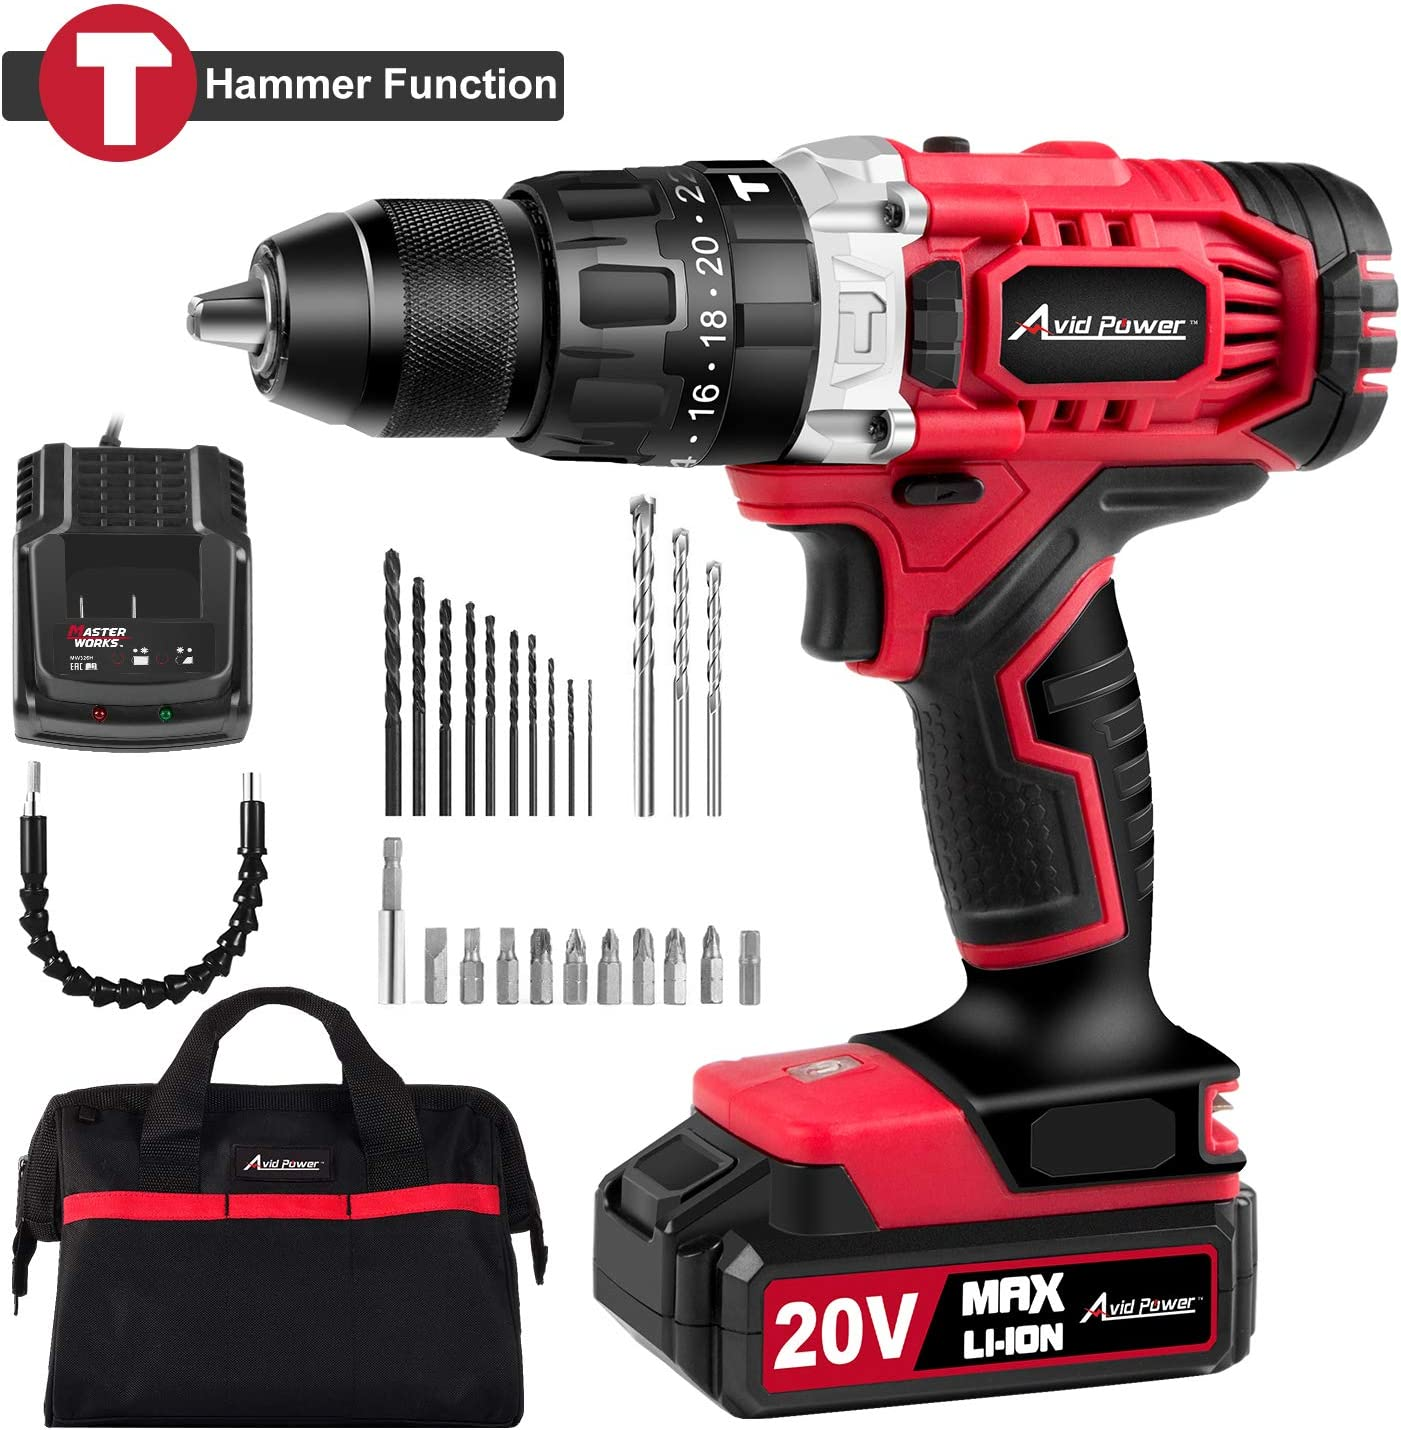 20V Max Lithium-Ion Cordless Hammer Drill Driver, 1 2 Keyless Chuck, Max Torque 405 in-lbs 2-Speed, 1 Hour Fast Charger, 20 1 Position, LED Light, 25pcs Accessories, MW326H